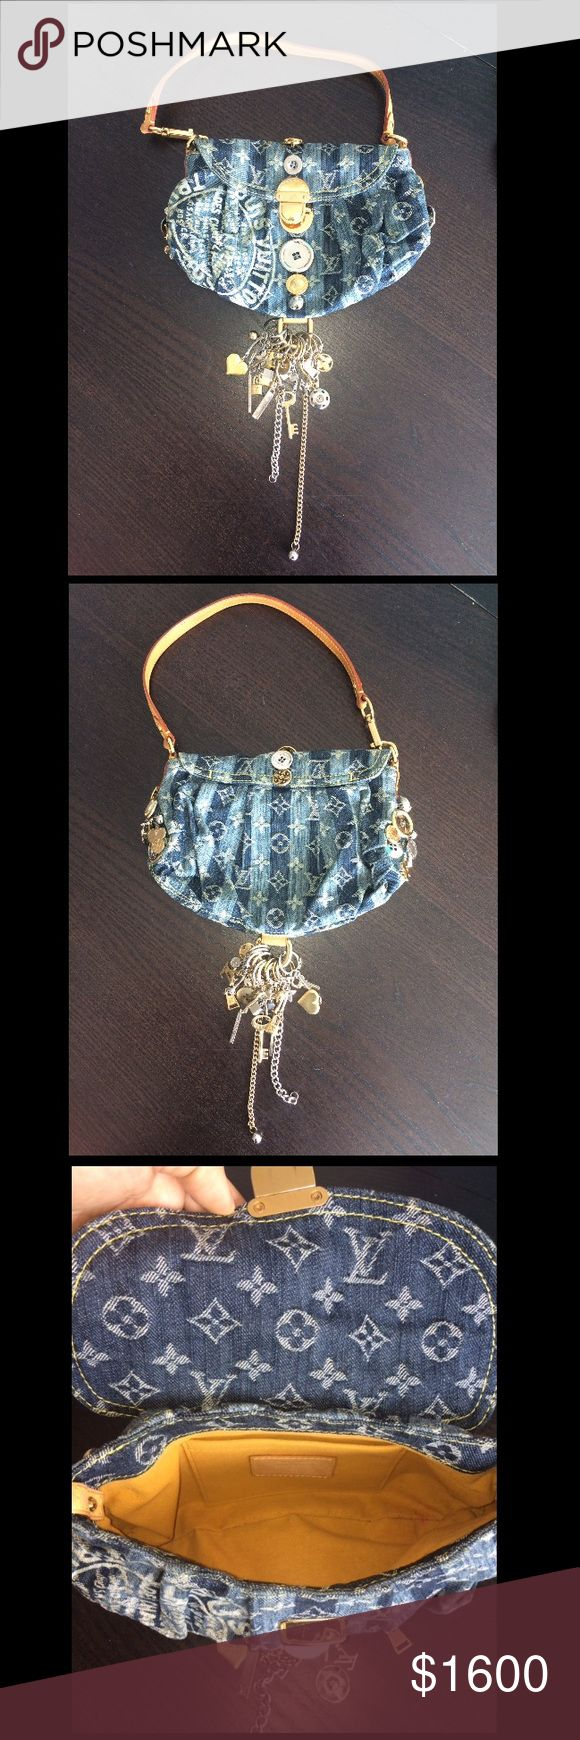 Louis Vuitton denim charm purse - limited edition Authentic Louis Vuitton Limited Edition Denim Mini Pleaty Raye Bag New and Made in France. Your rare crafted bag is a Louis Vuitton monogram denim canvas and natural cowhide leather. The front features the iconic Louis Vuitton trunks design. Your Louis Vuitton features many charms & embellishments in nickel & brass & yellow/gold Alcantara lining. A spacious interior reveals an open slip pocket. You would be proud to own this gem! Louis…